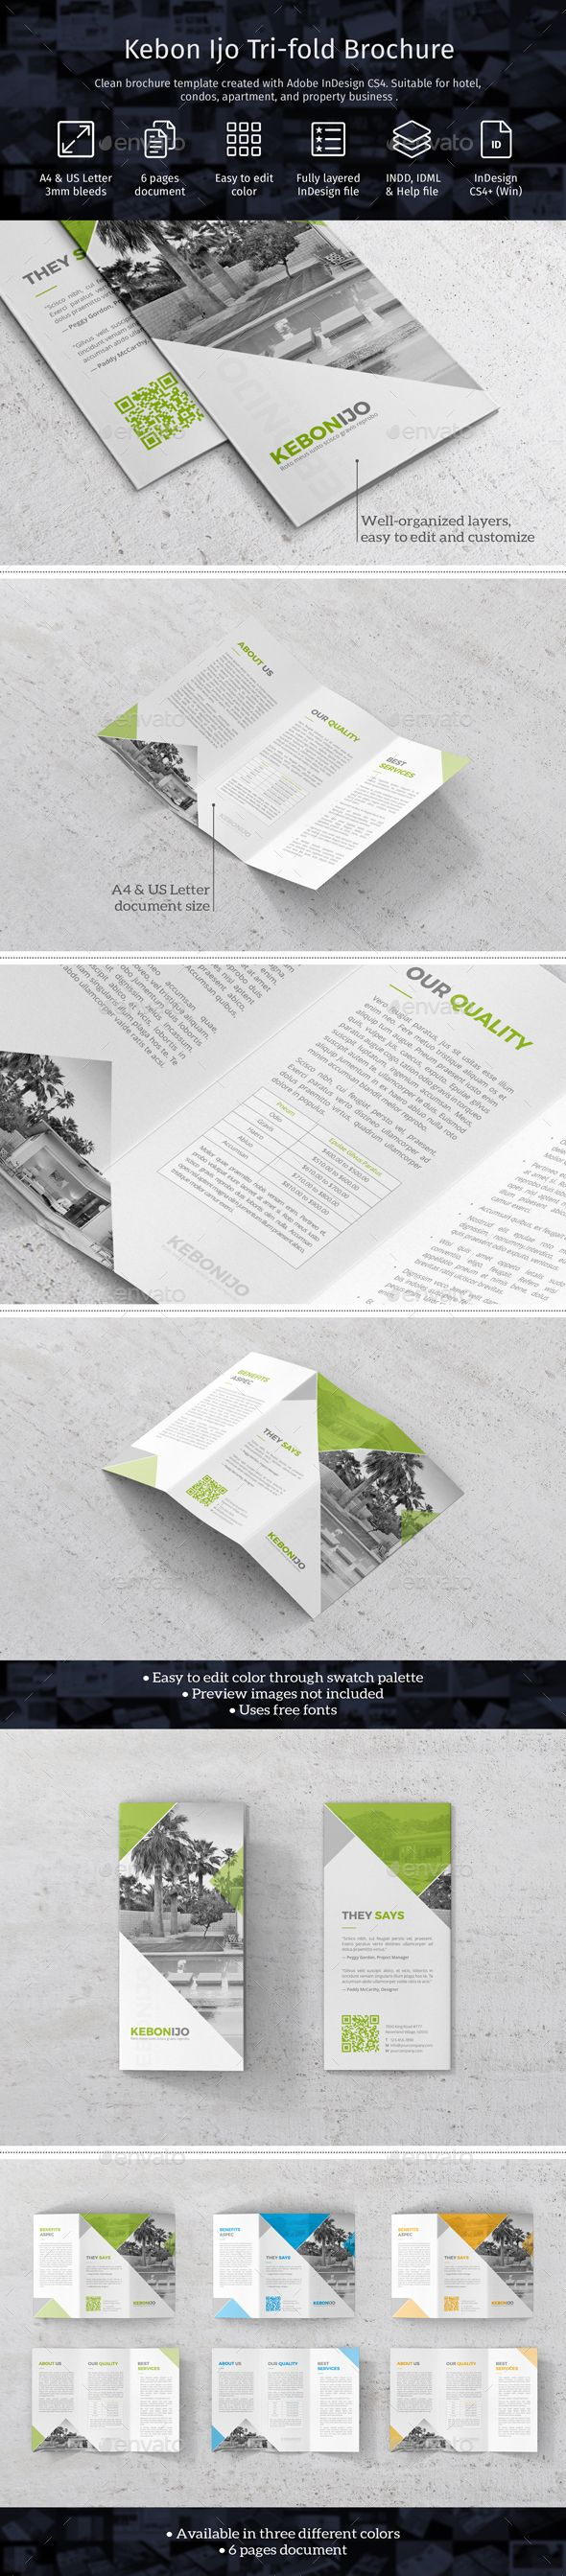 Kebon Ijo Trifold Template | Brochure template, Brochures and Template